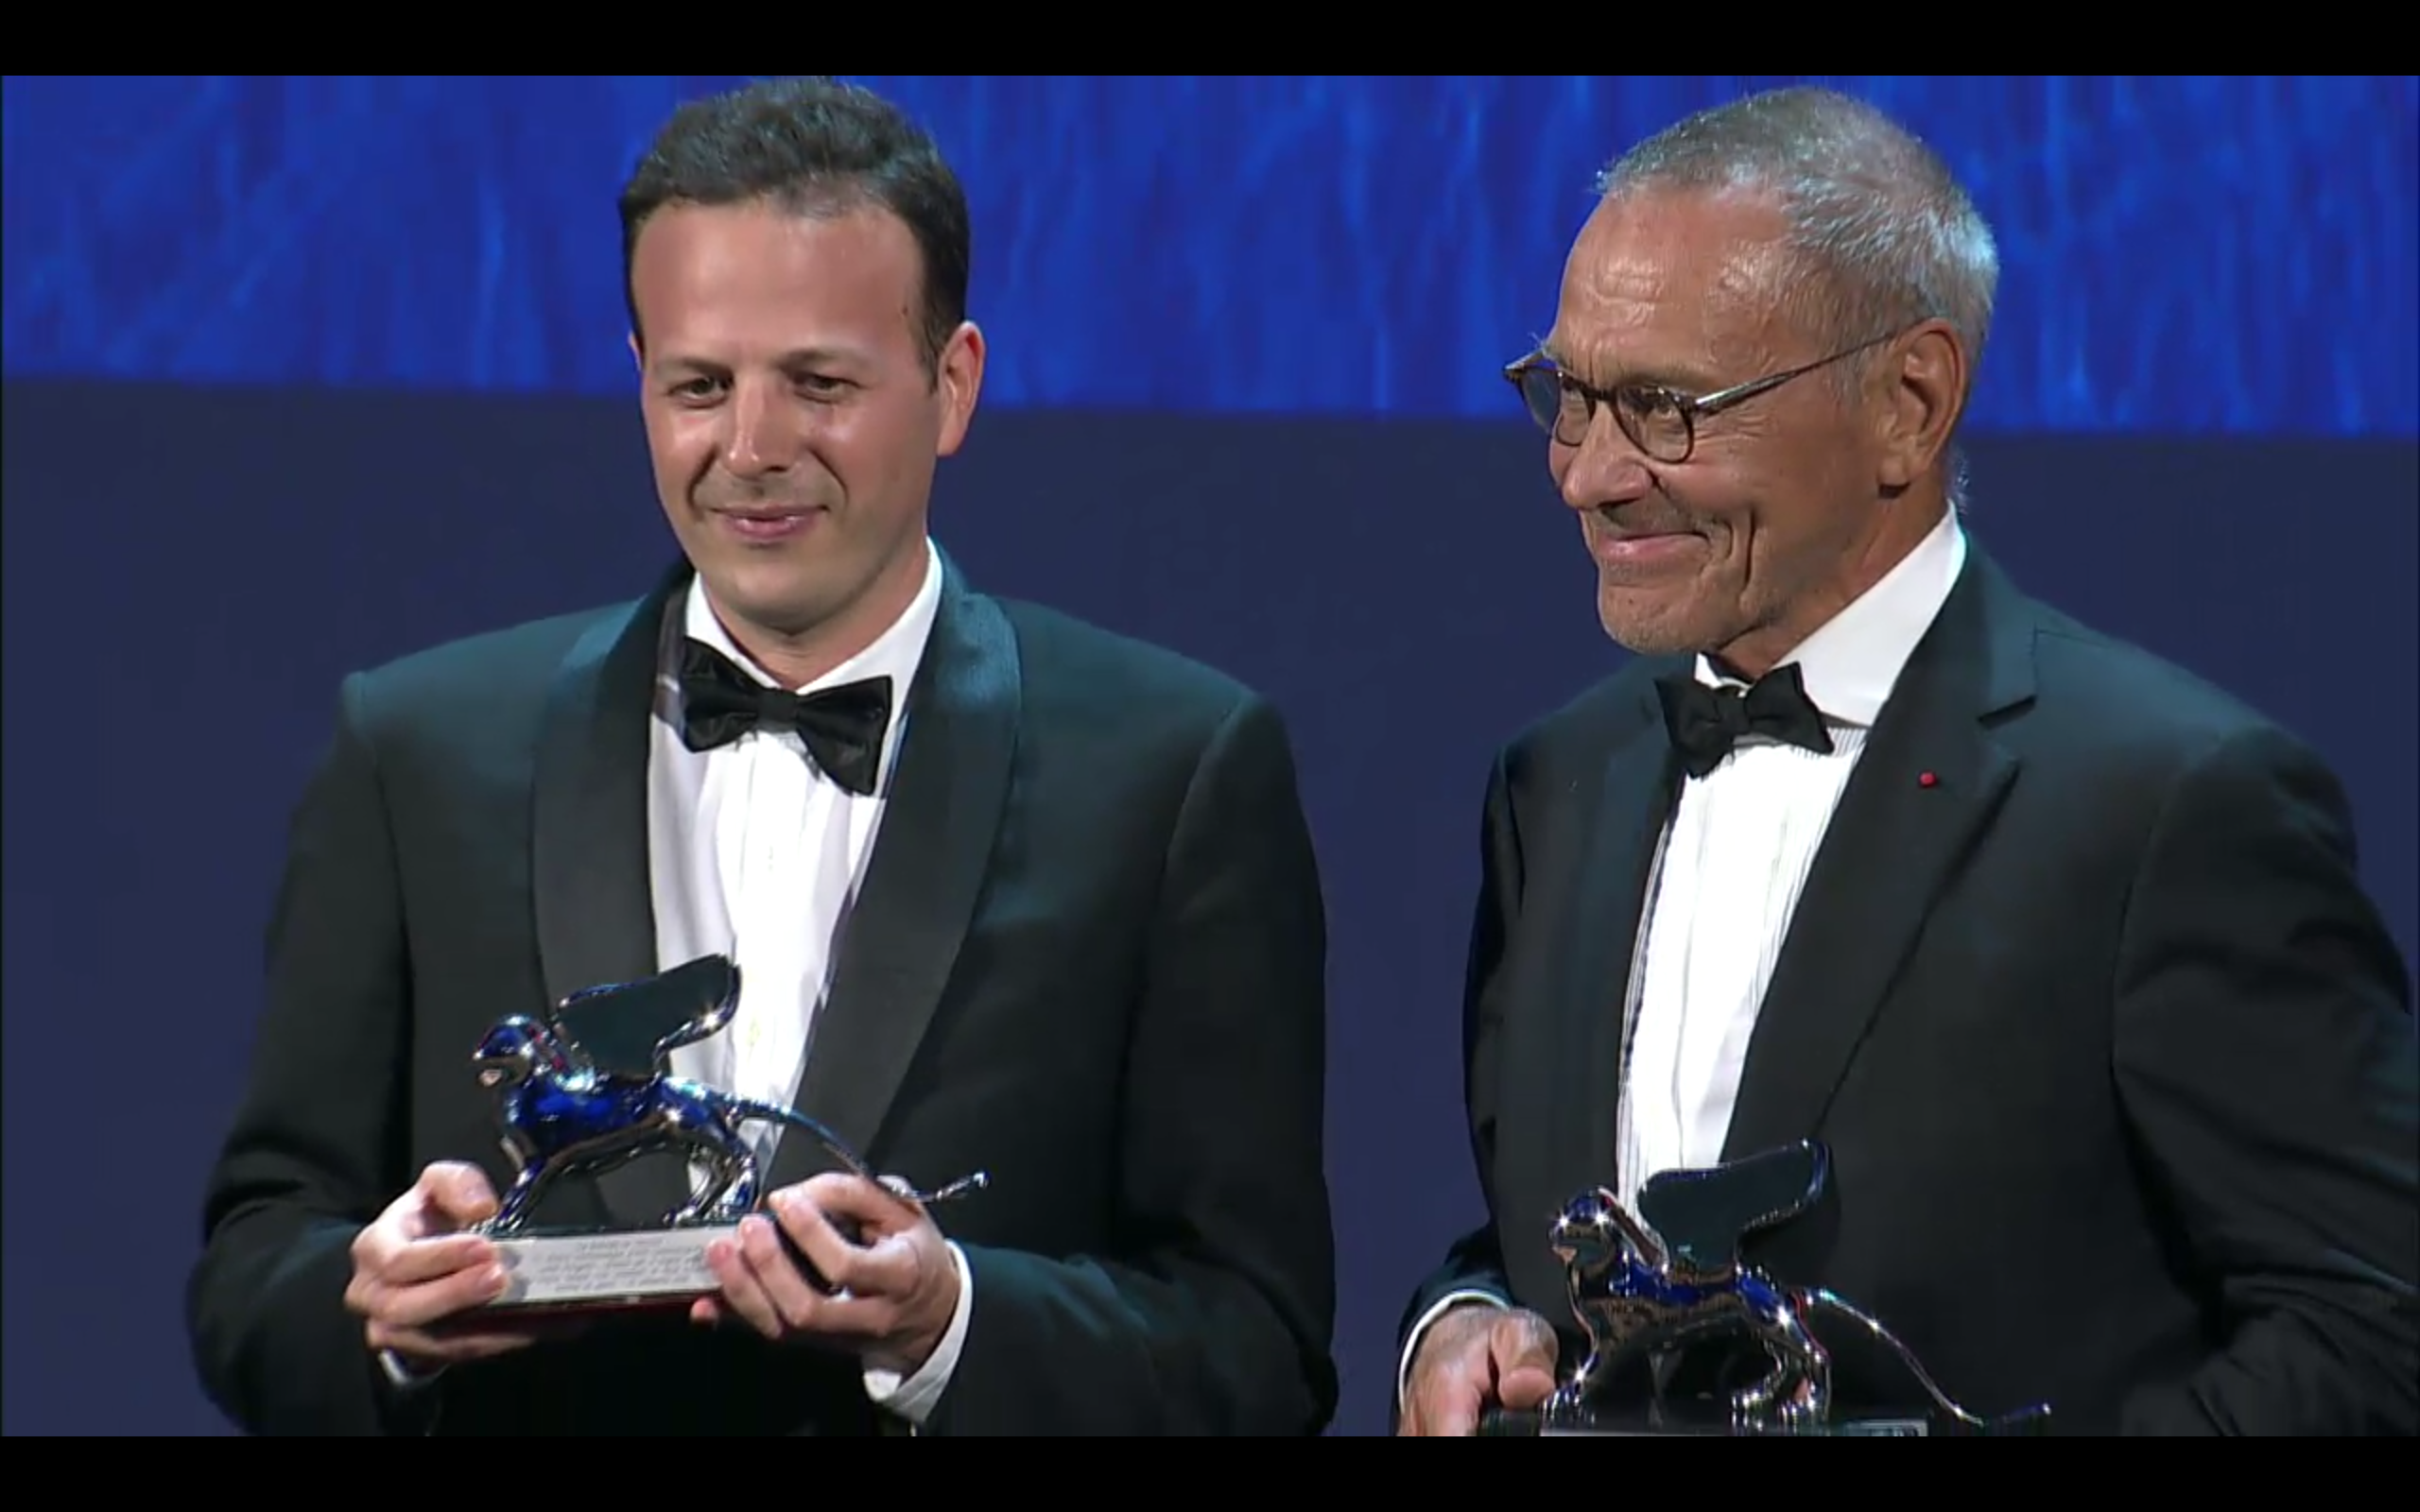 SILVER LION - AWARD FOR BEST DIRECTOR ex-aequo to: ANDREI KONCHALOVSKY and AMAT ESCALANTE